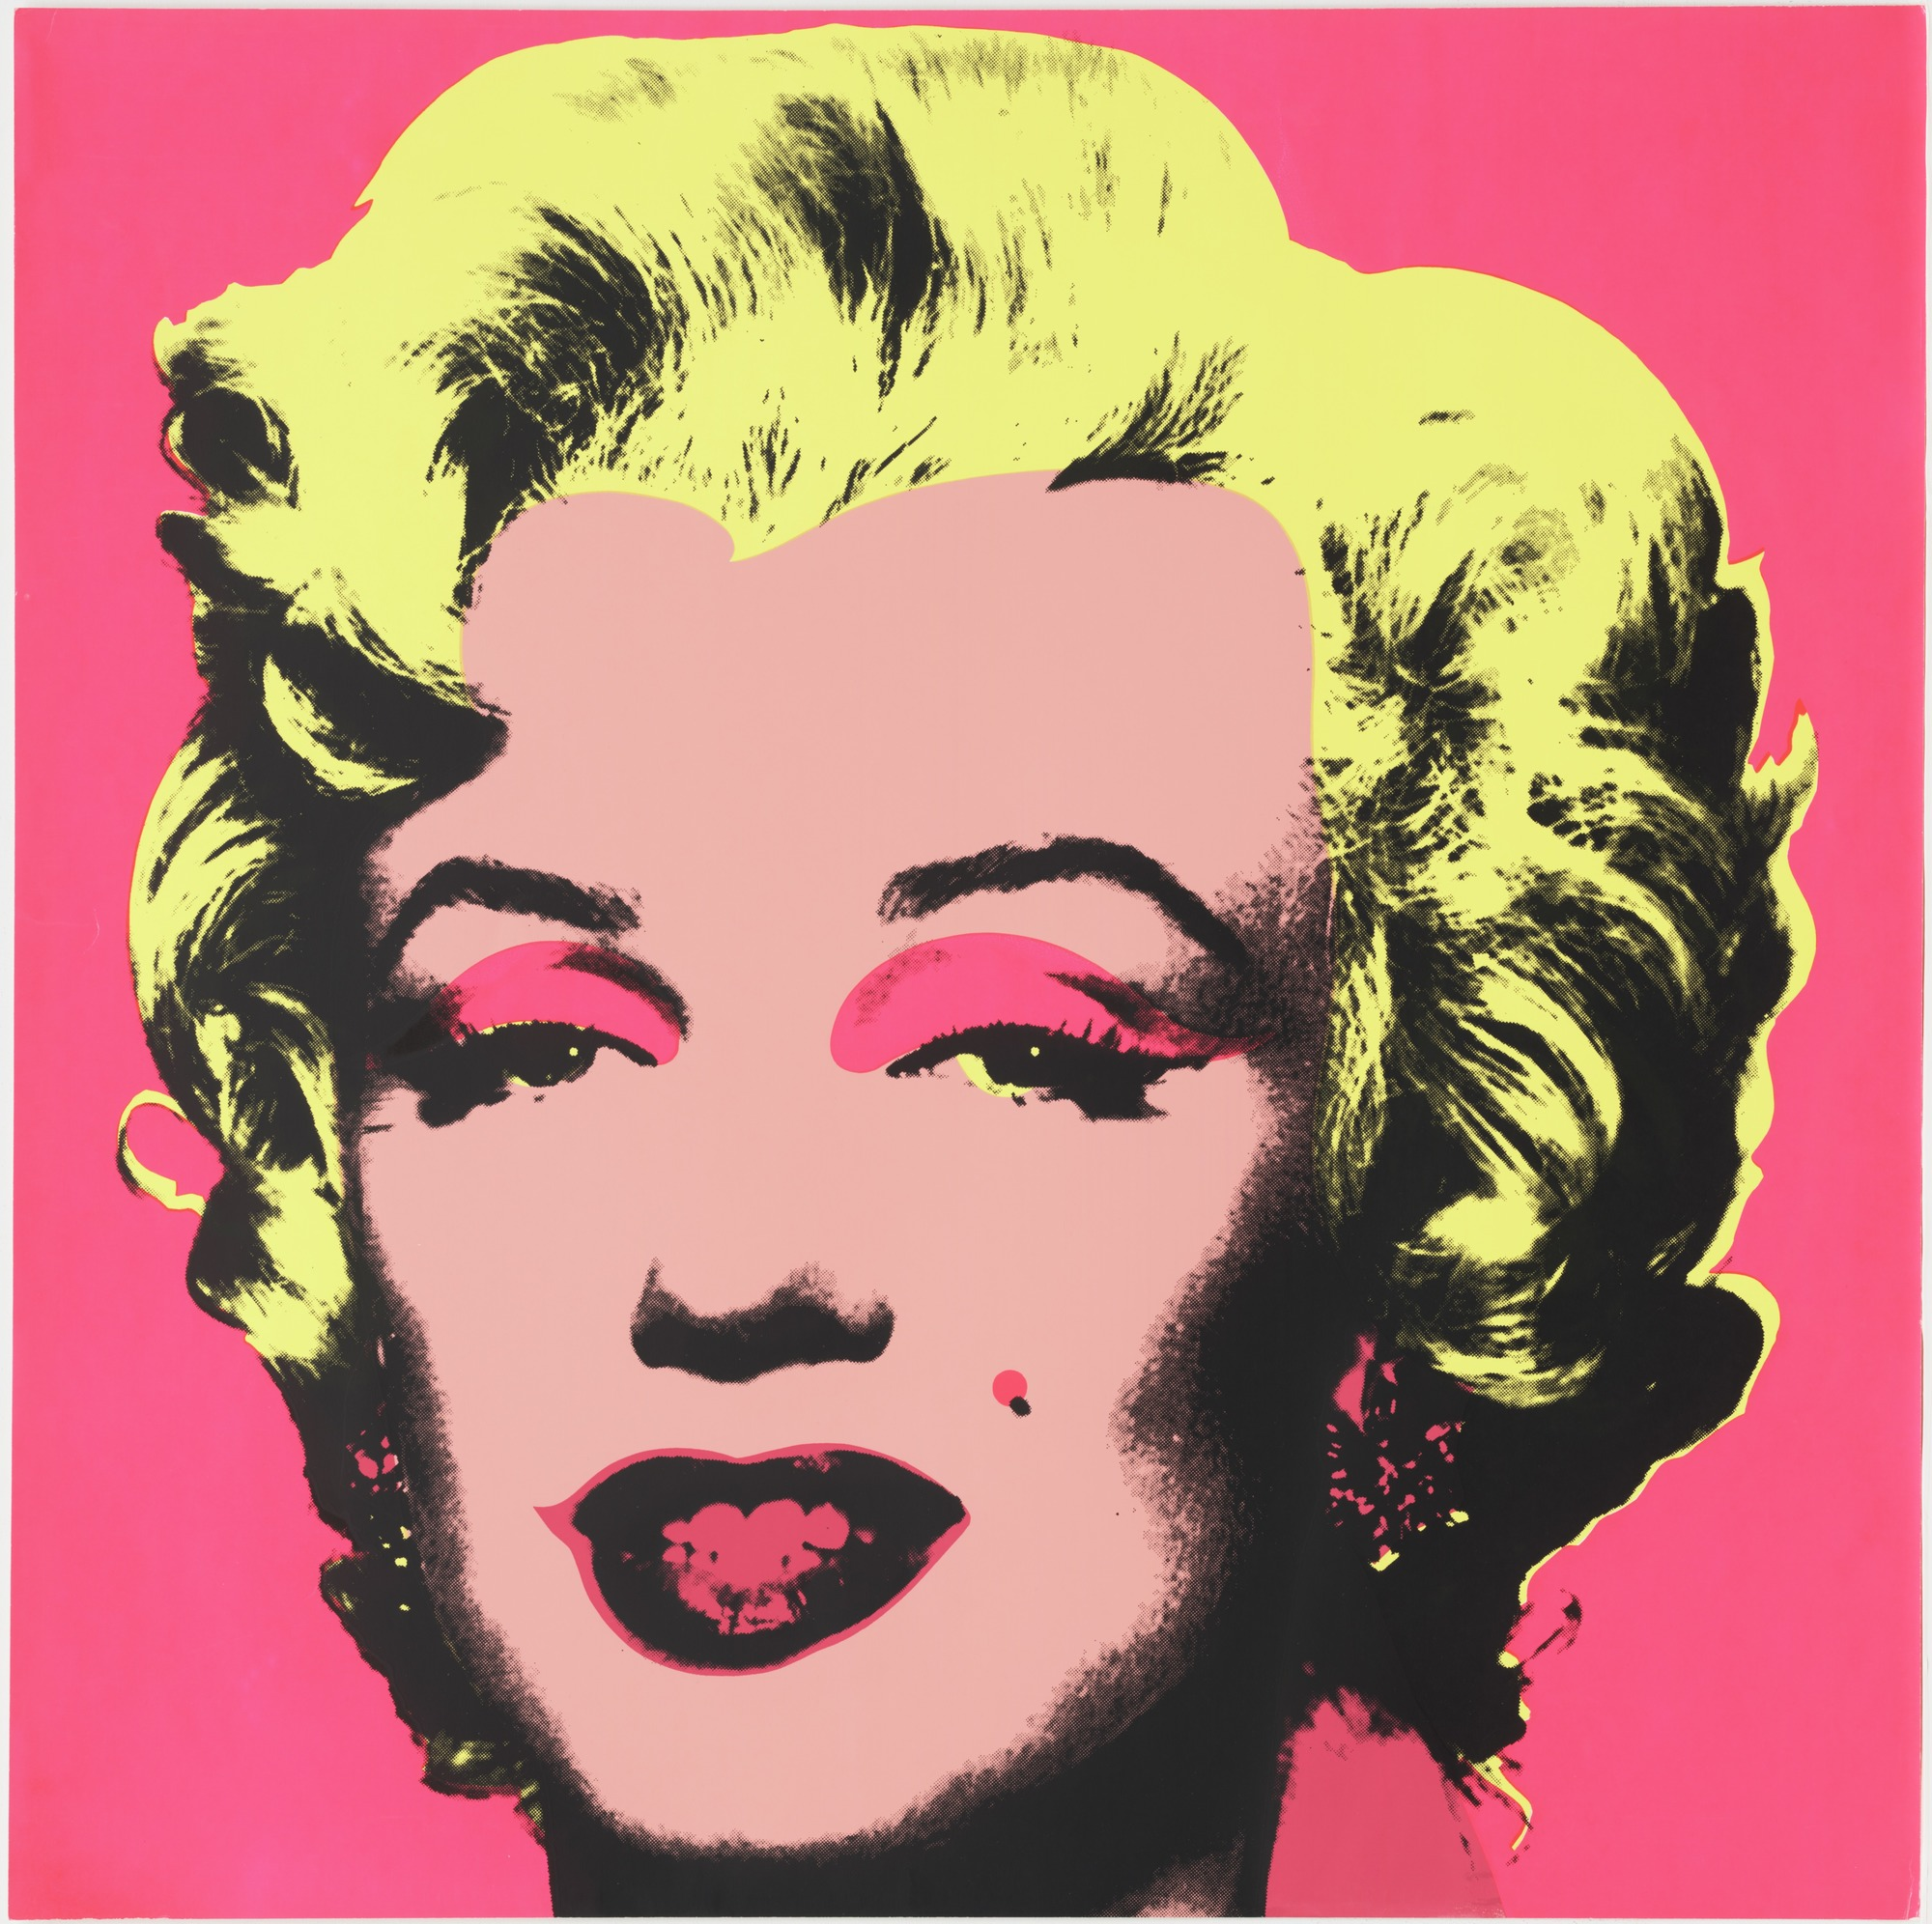 Few would disagree with calling Marilyn Monroe an  icon , although many have forgotten the true origins of the word and concept. Andy Warhol, however, most certainly did not.